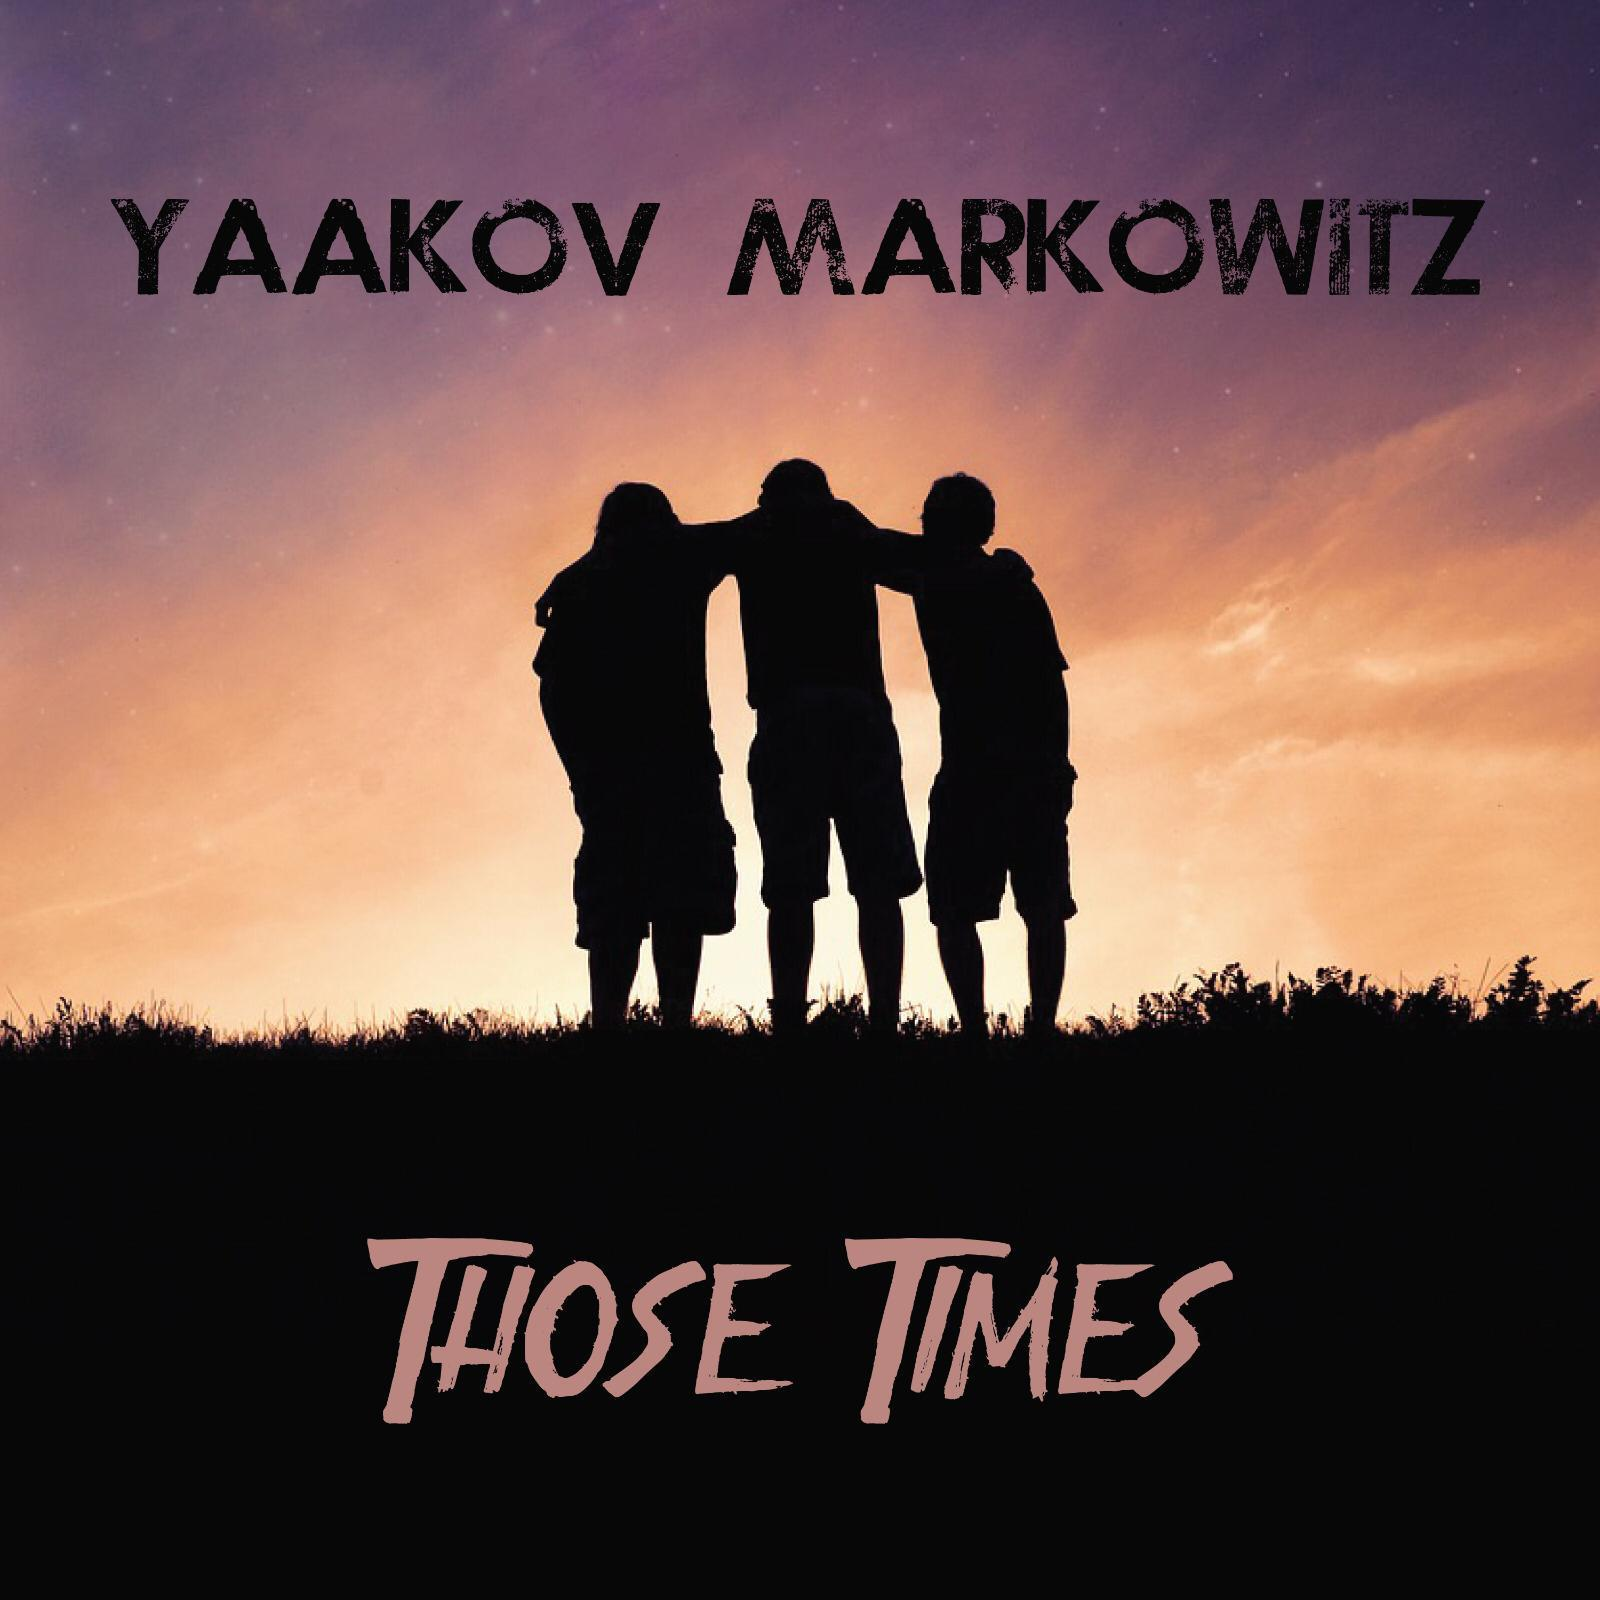 Yaakov Markowitz - Those Times (Single)